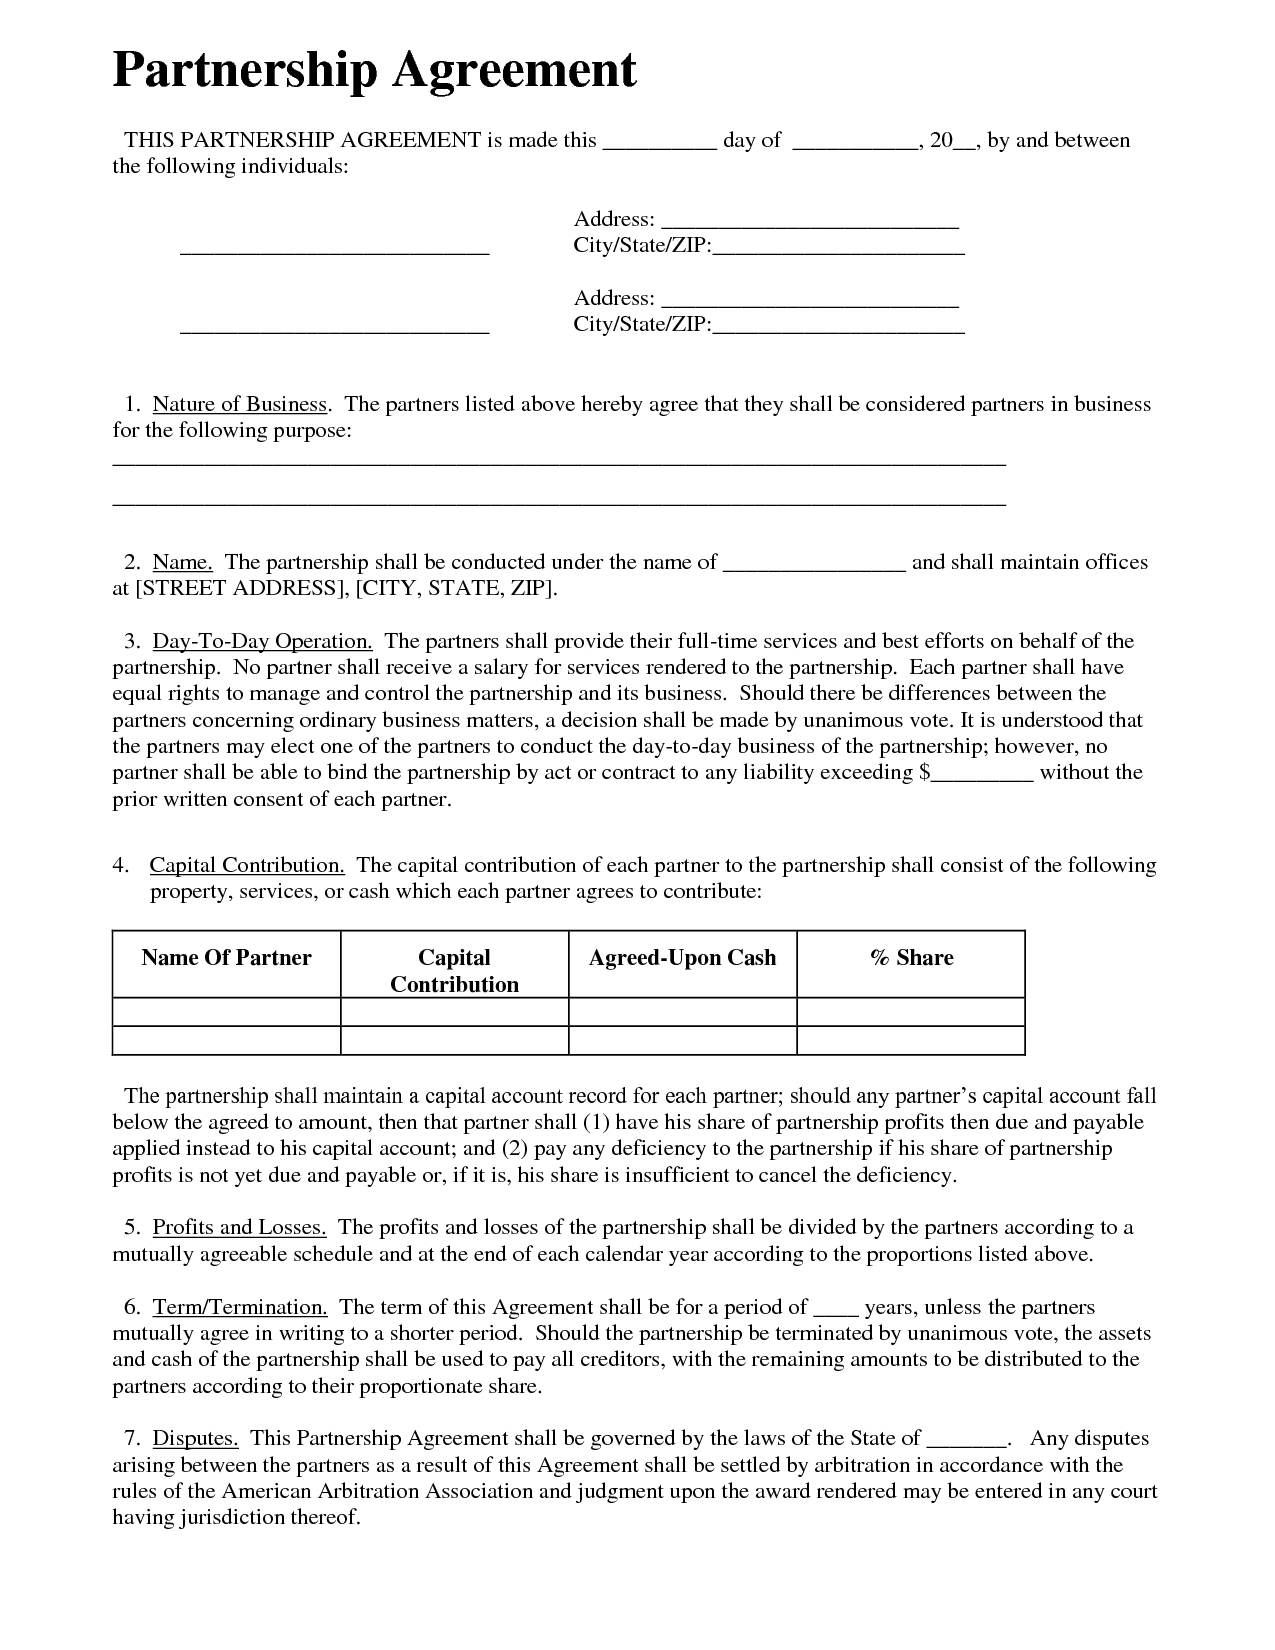 Partnership Agreement  Business Templates  Small Business Plan In House And Flat Share Agreement Contract Template